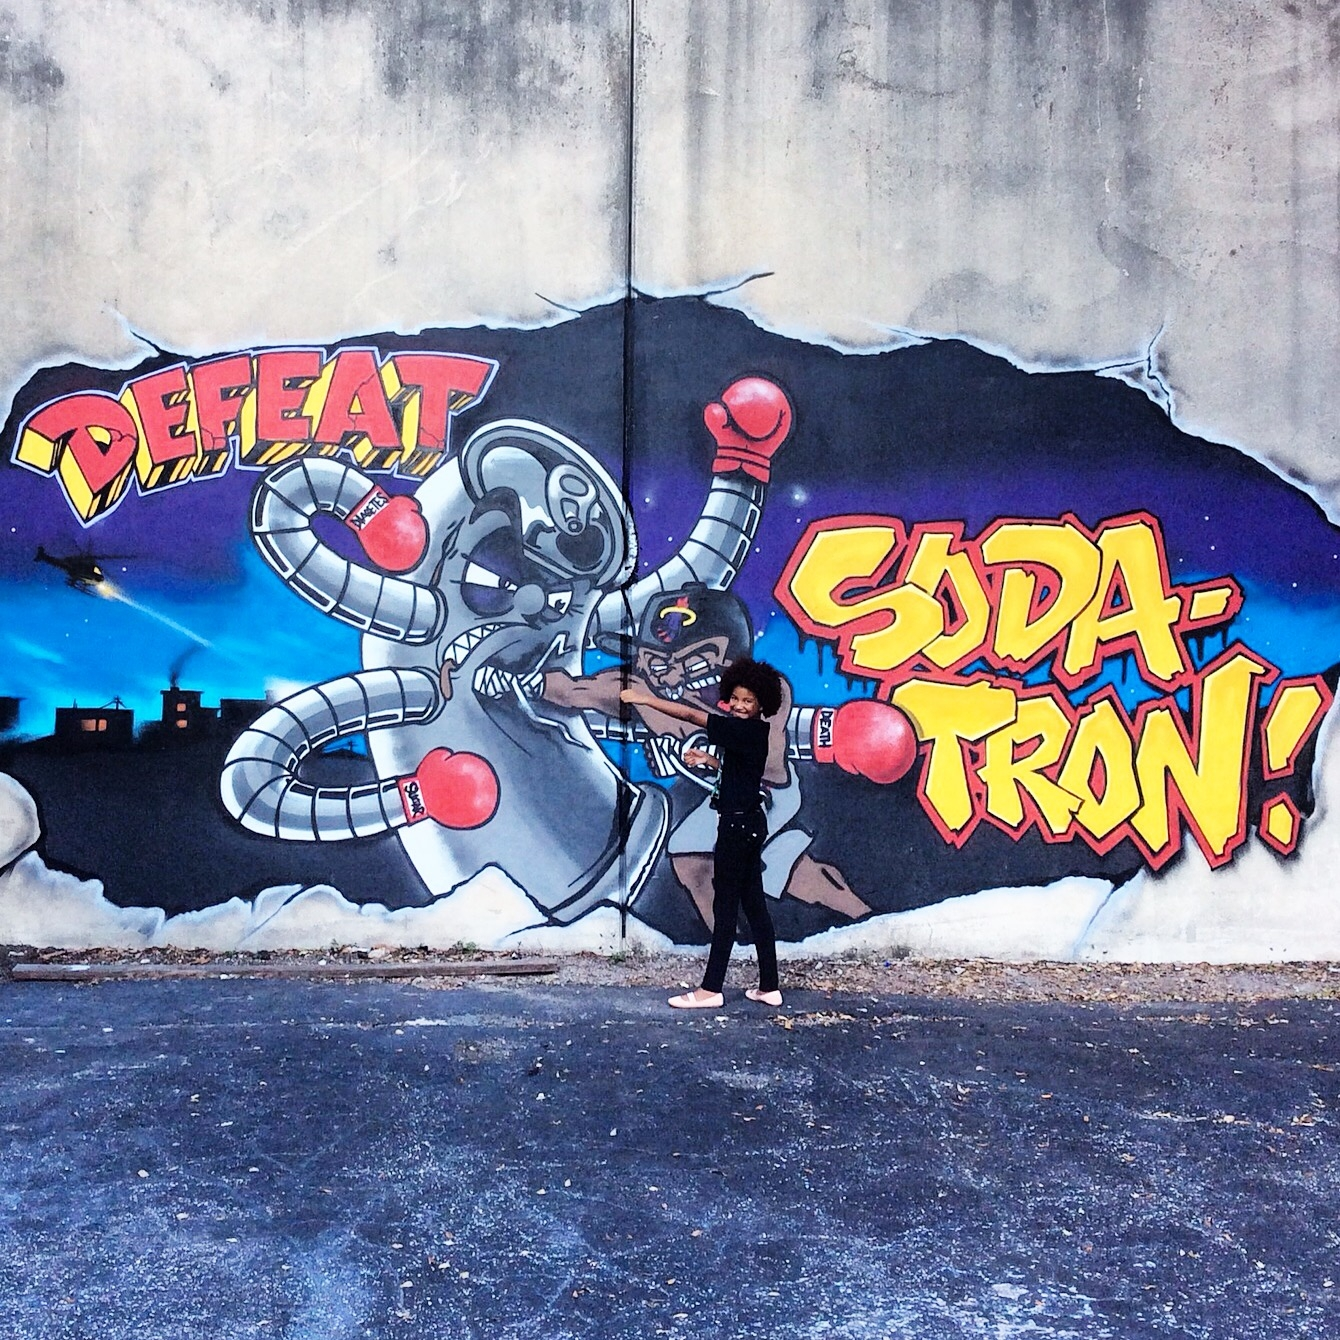 Operation: #DEFEATSODATRON in Miami at Solbox Fitness with street art mural by @MikeRichDesign @vyalone @Keo_xmen